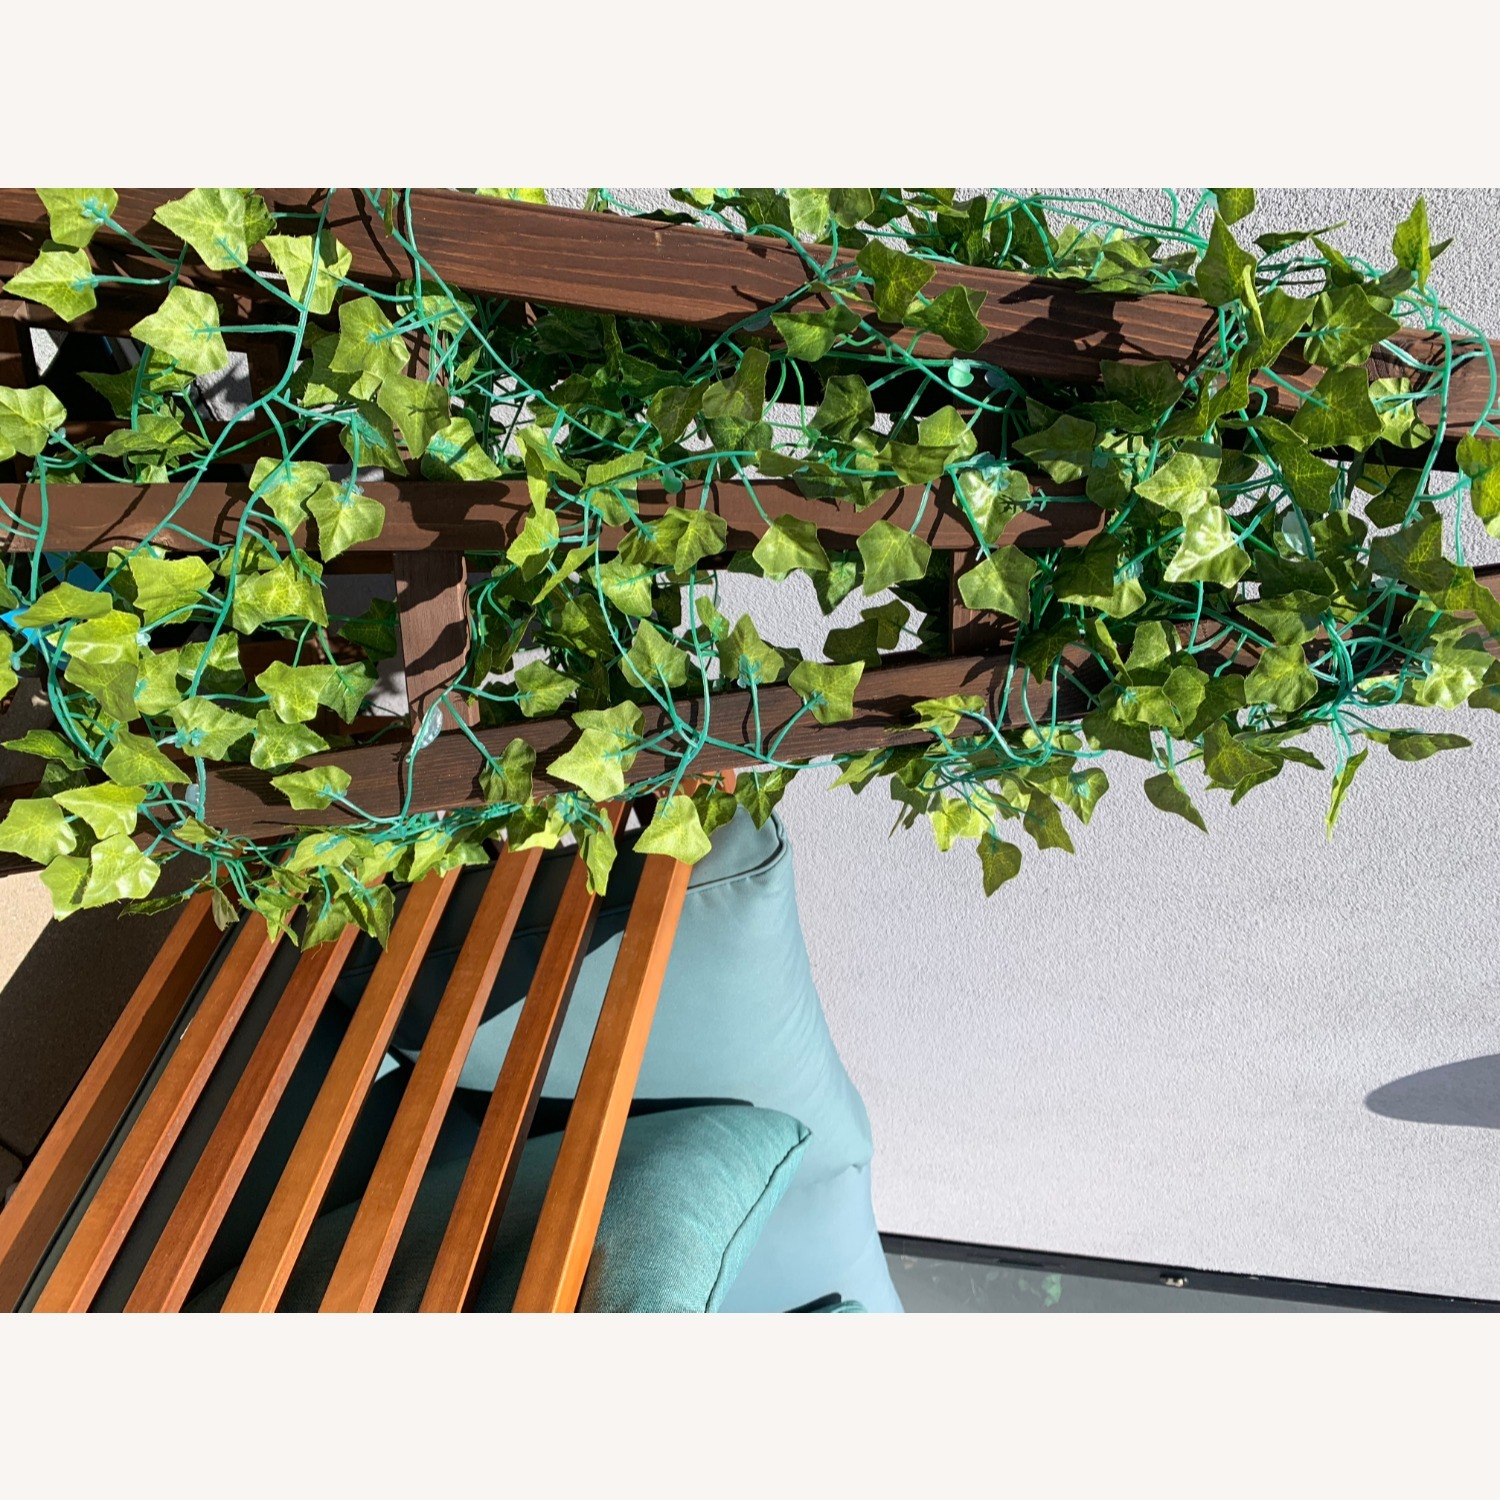 Patio Loveseat + Table + Obelisk With Faux Ivy - image-10